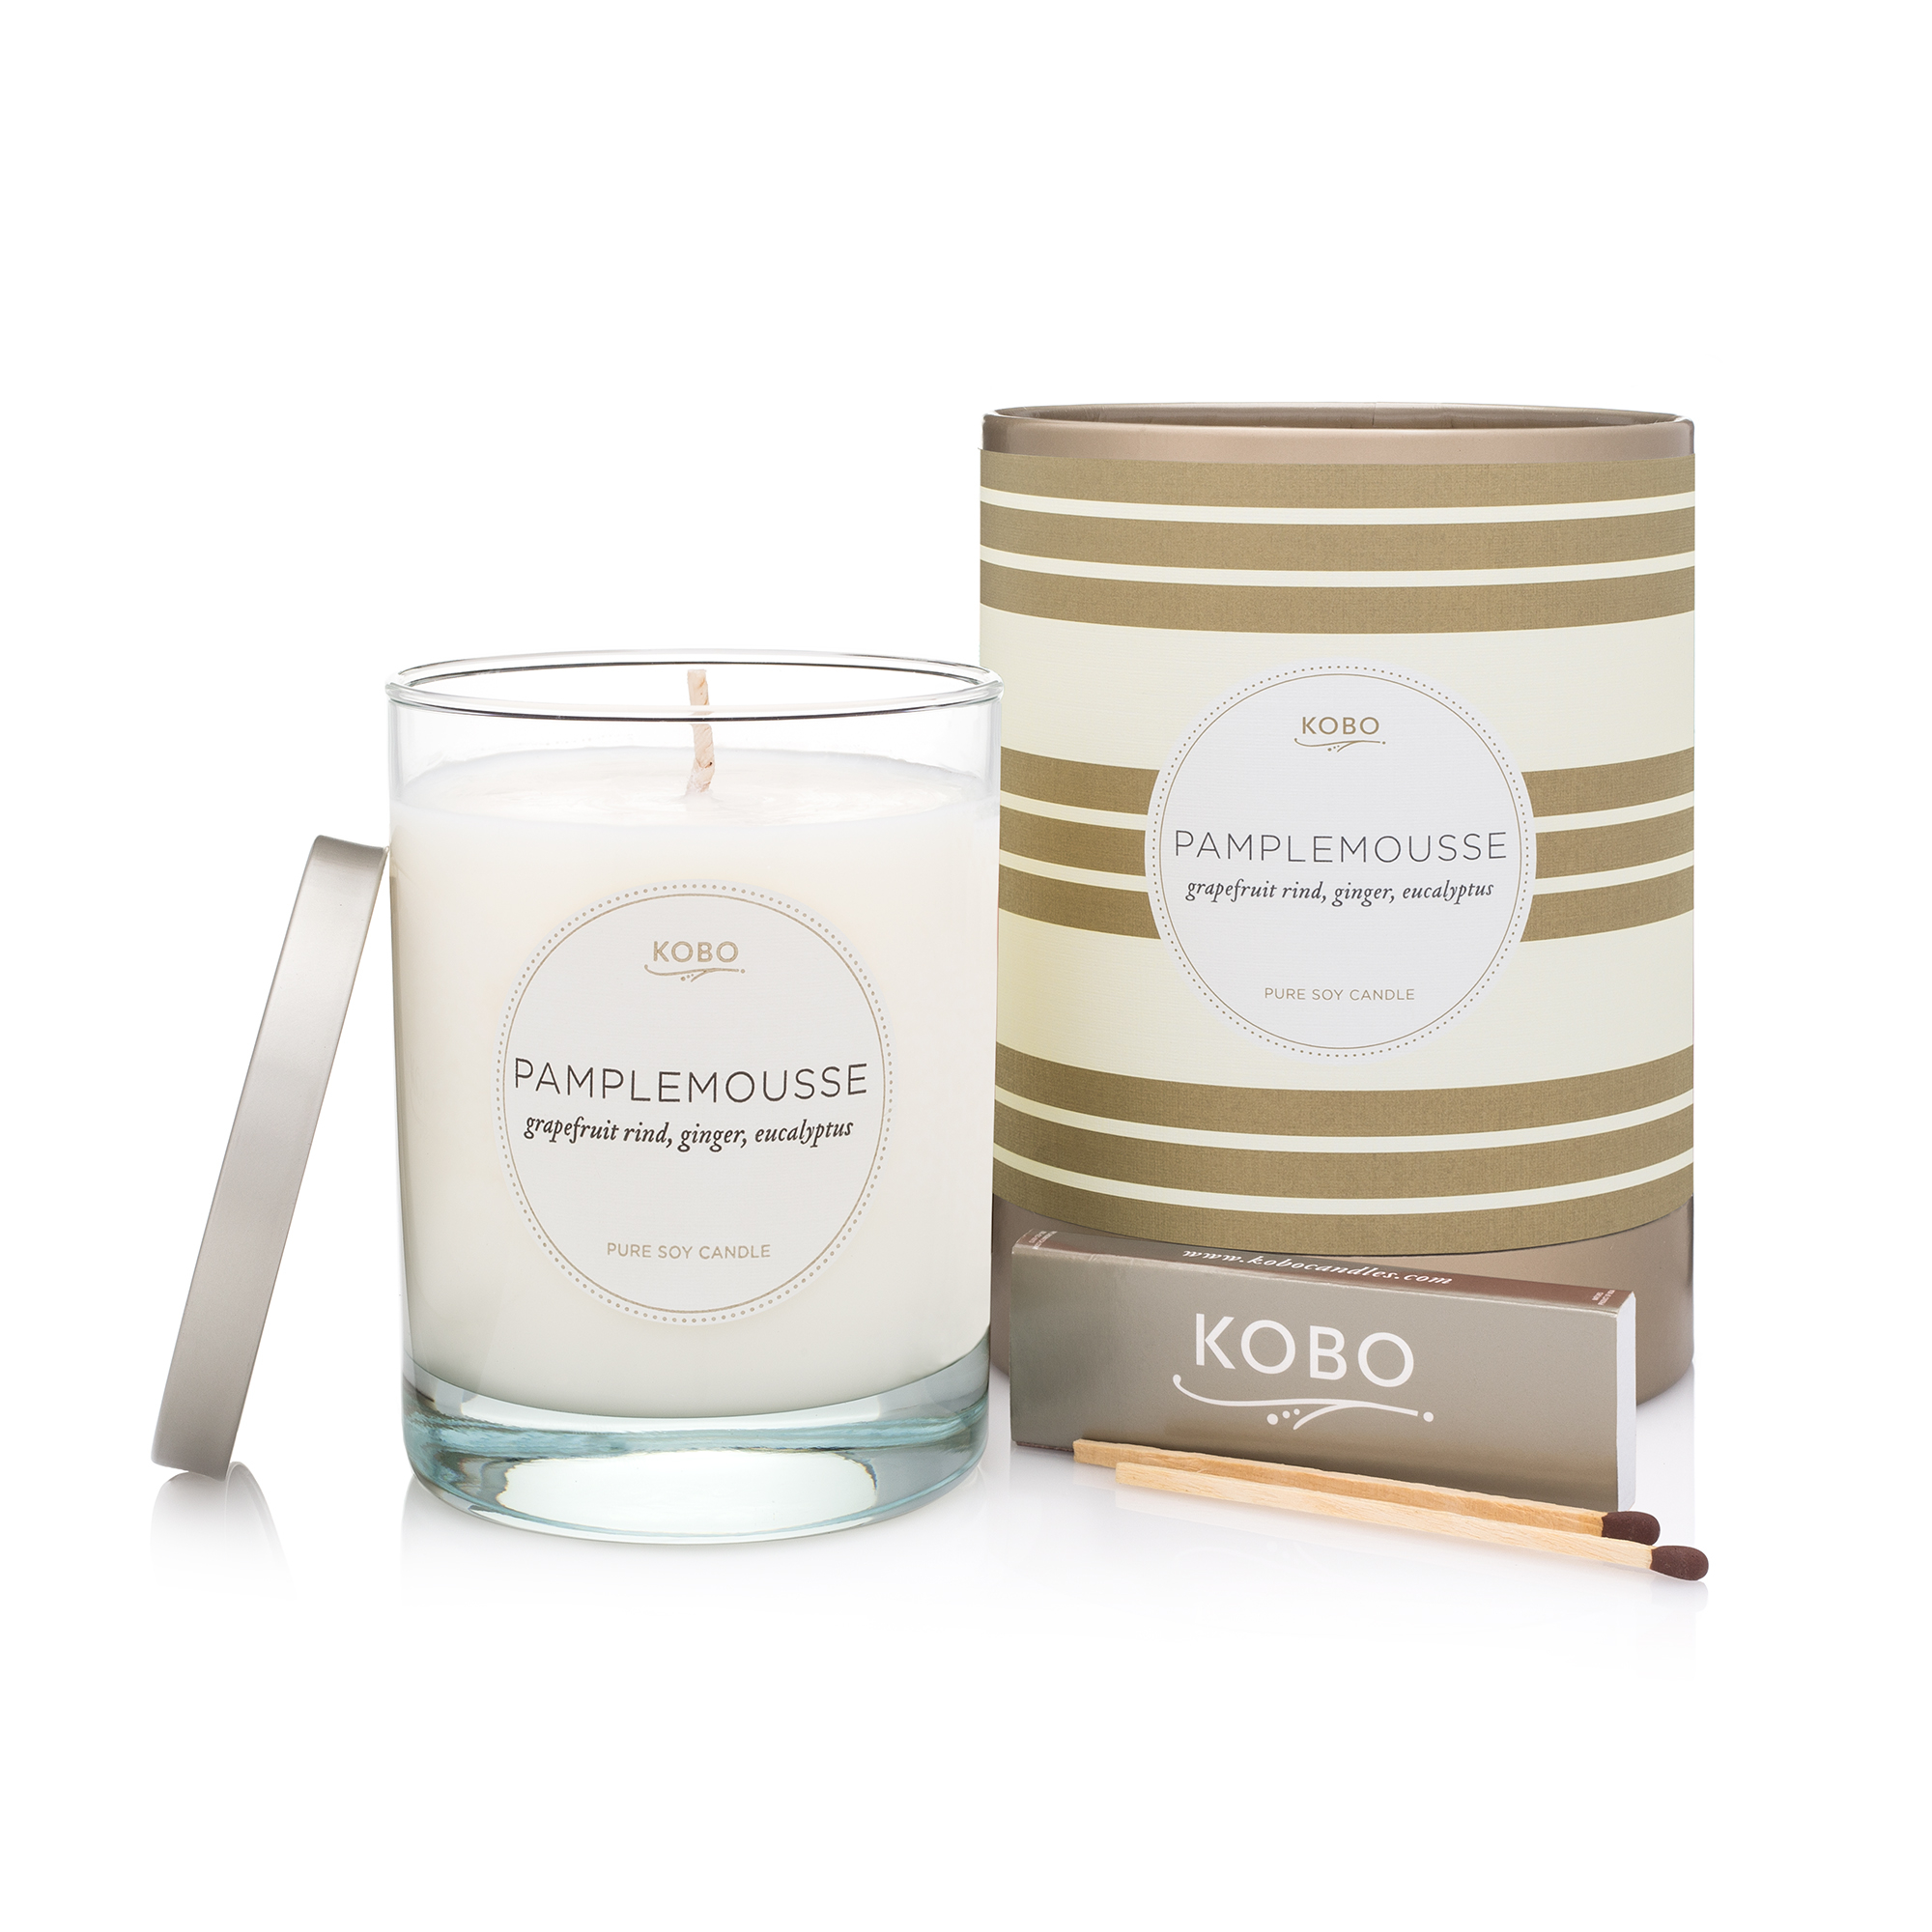 Kobo Pamplemousse Candle